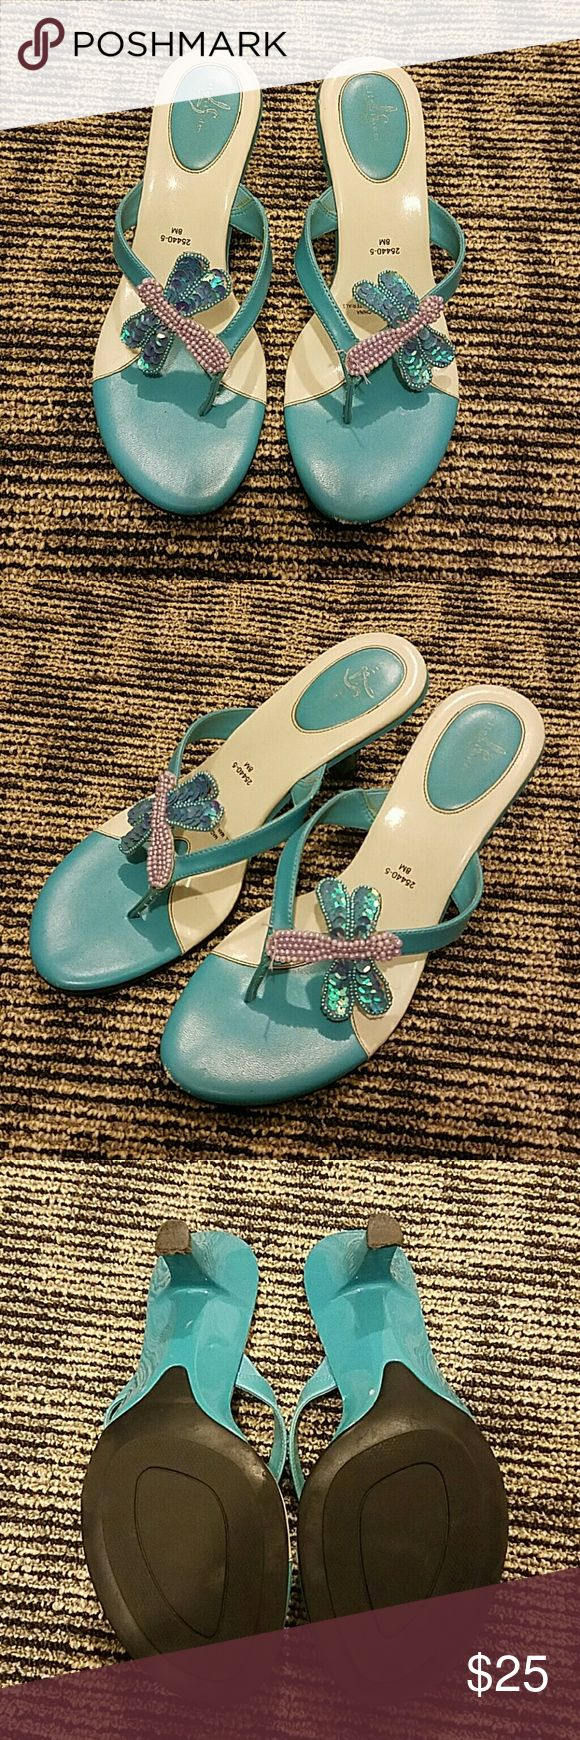 Blue Butterfly 2 inch Heels In good condition, barely any signs of wear Life Stride Shoes Heels